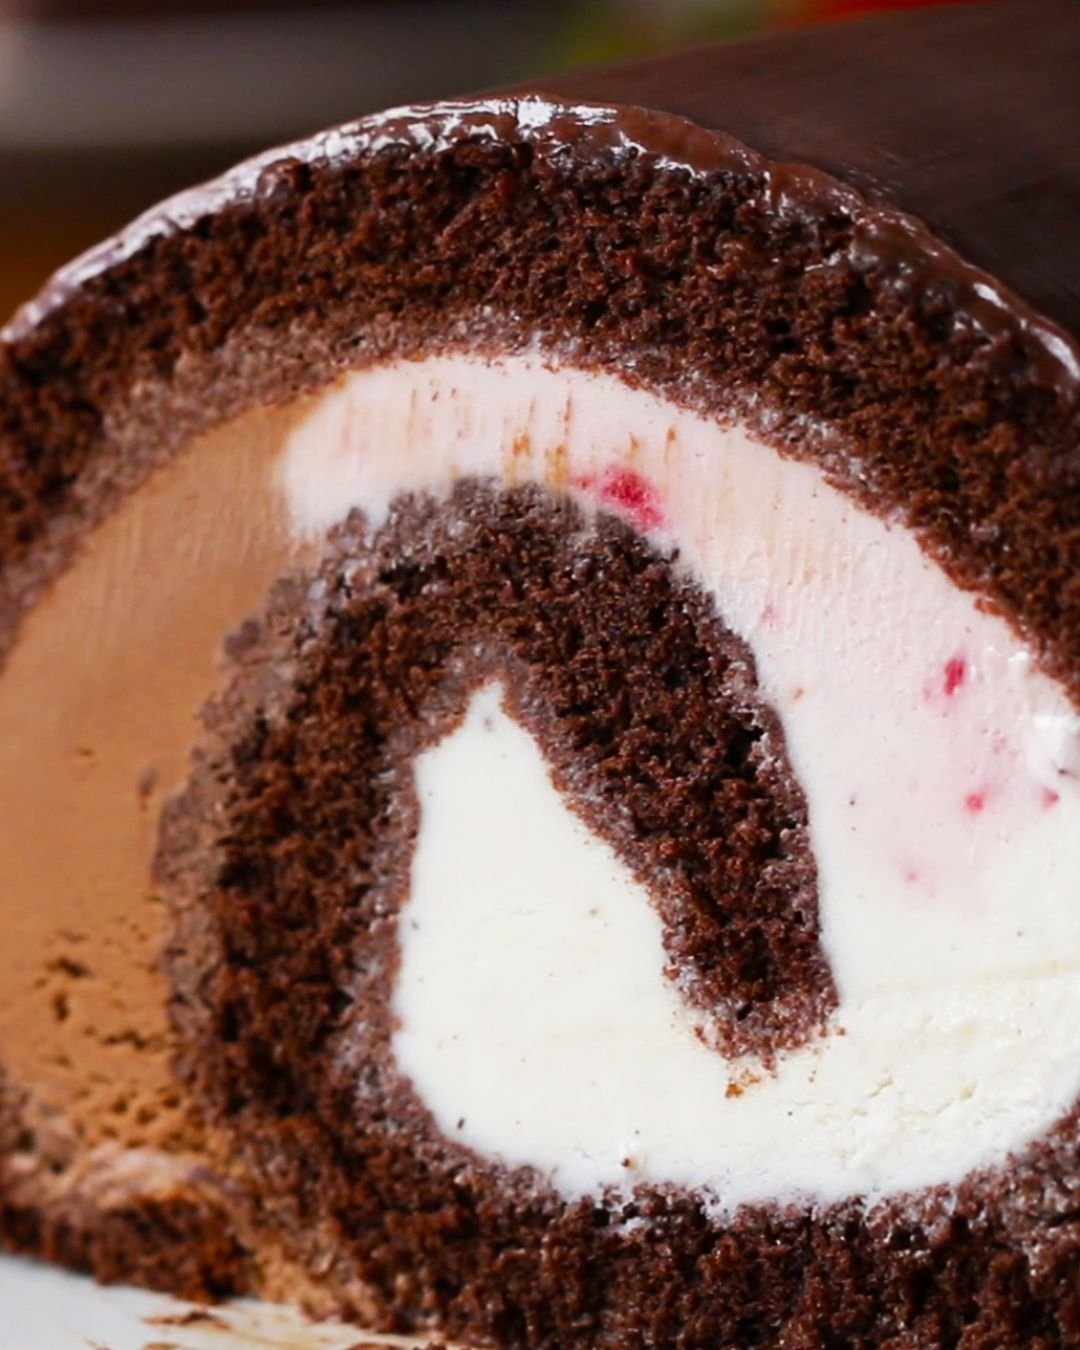 Neapolitan Ice Cream Cake Roll Recipe By Tasty Recipe Cake Roll Recipes Ice Cream Cake Roll Cake Roll